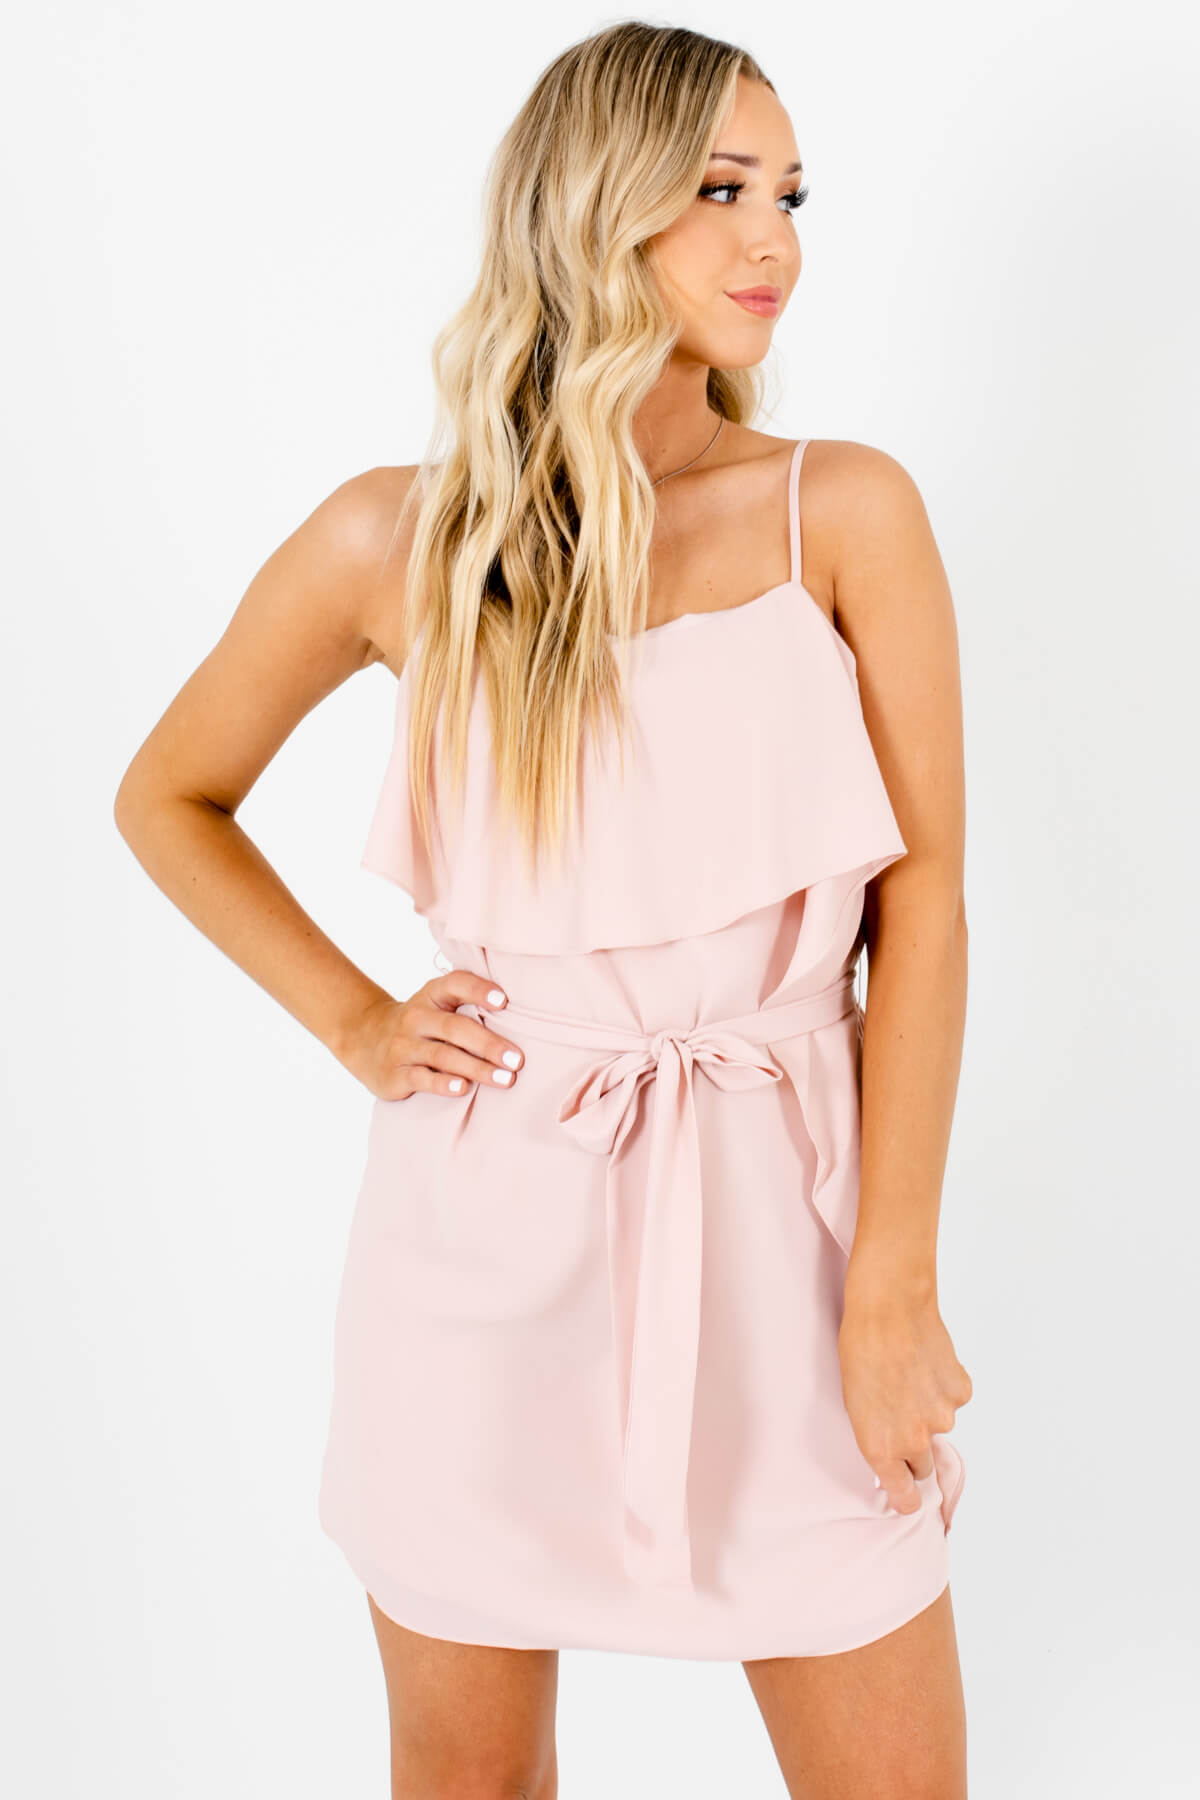 Blush Pink Asymmetrical Ruffled Overlay Boutique Mini Dresses for Women